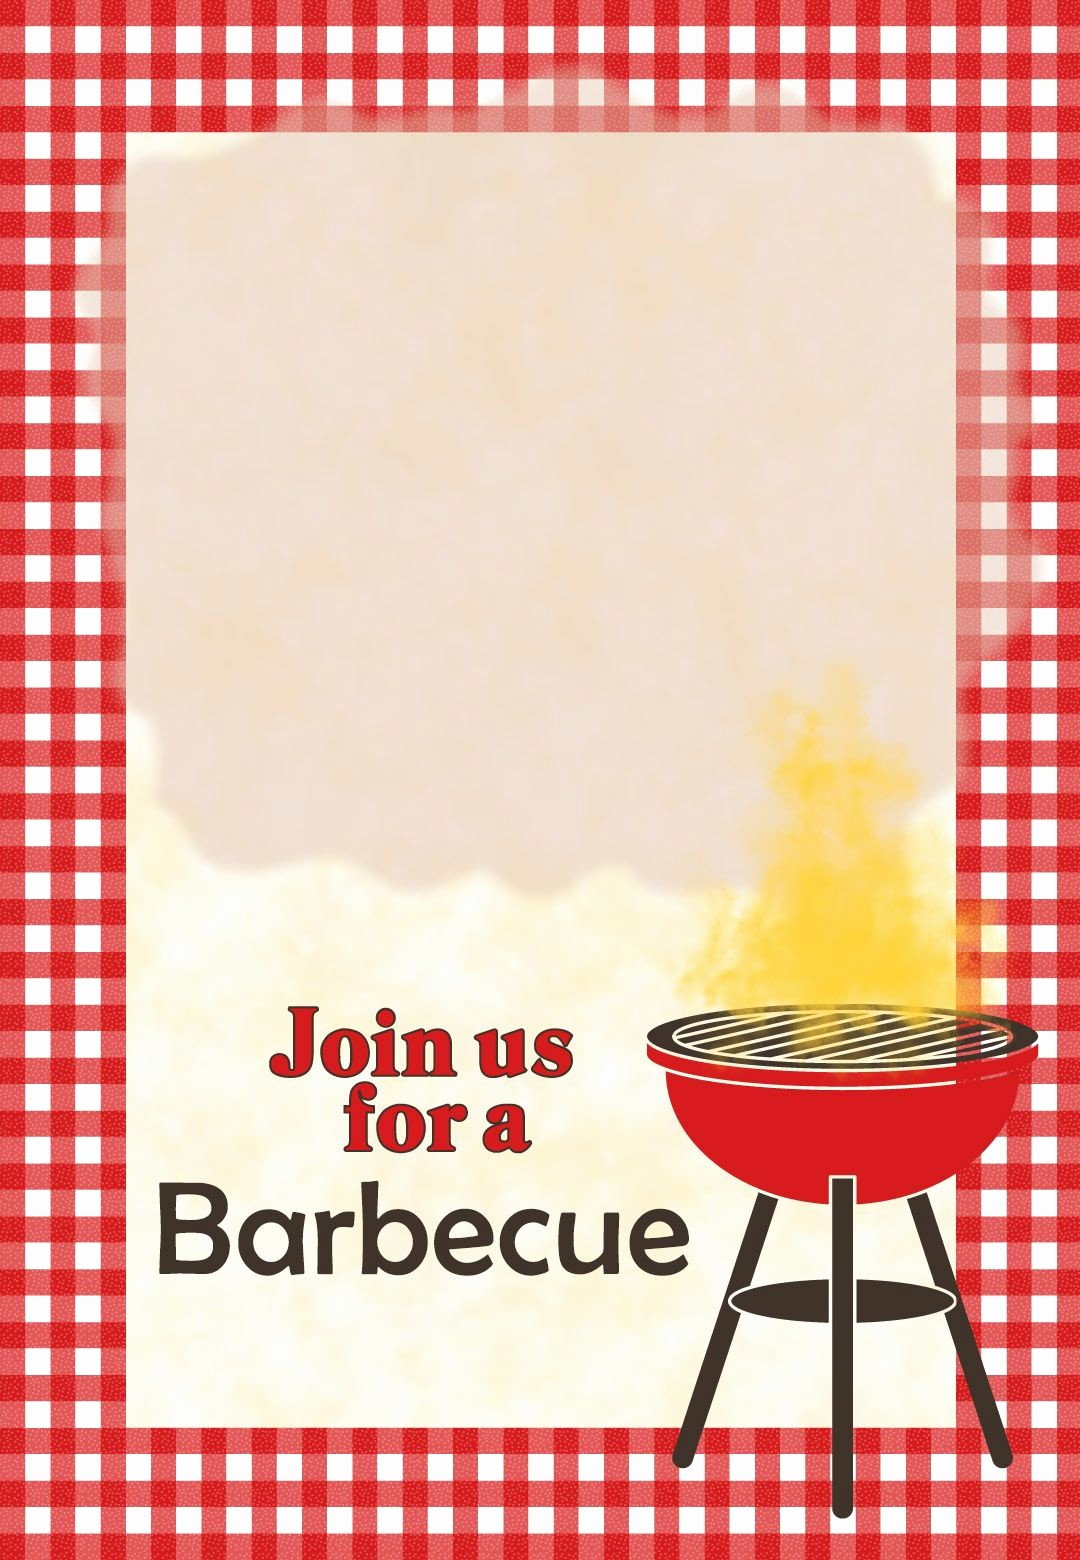 Bbq Party Invitation Templates Free Best Of A Barbecue Free Printable Party Invitation Template